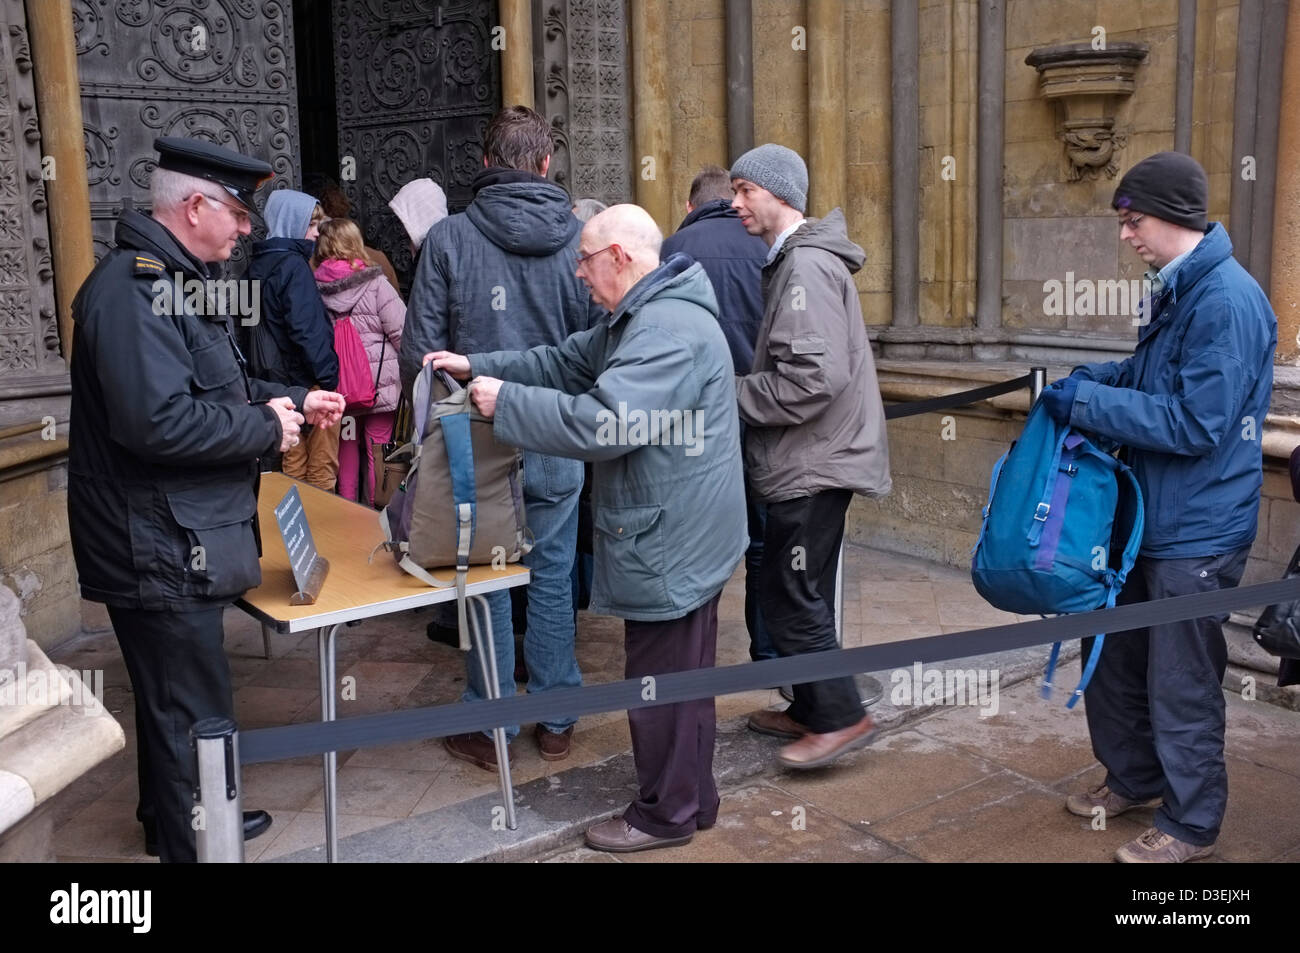 Security check bags outside Westminster Abbey in London - Stock Image